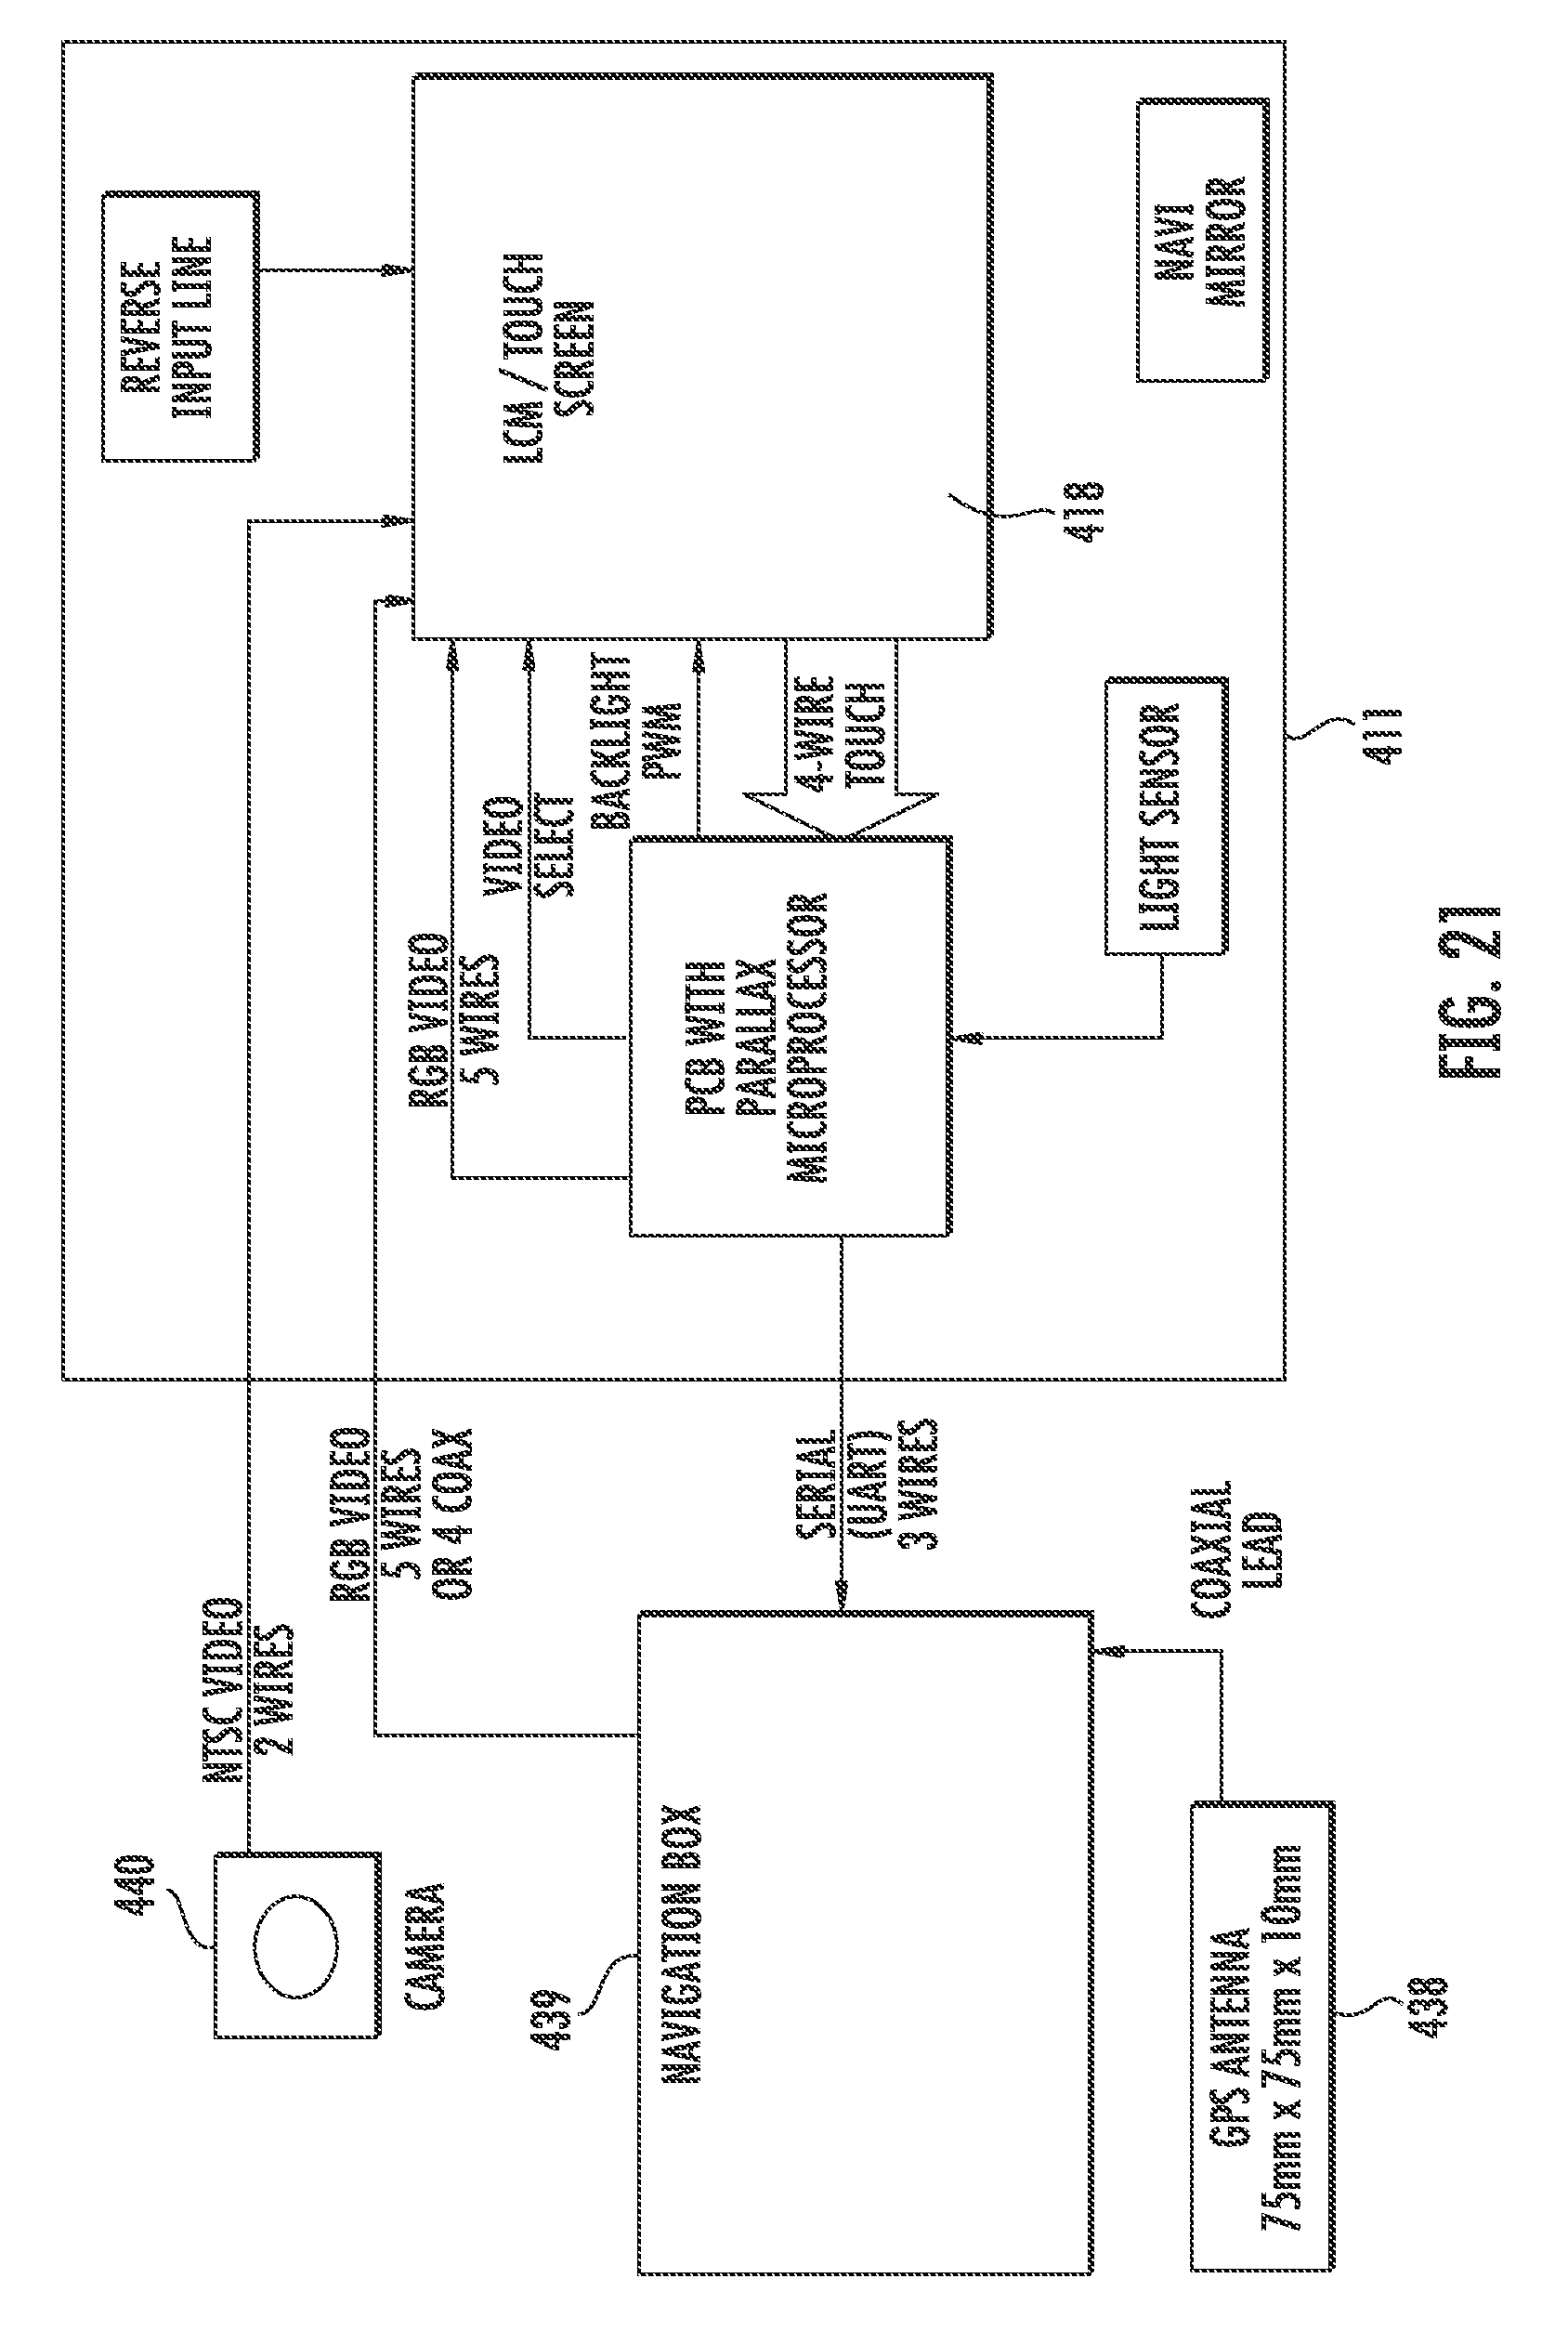 hight resolution of circuit diagram depicts the 1975 datsun 610 transistor ignition unit 1975 datsun 610 transistor ignition unit circuit diagram